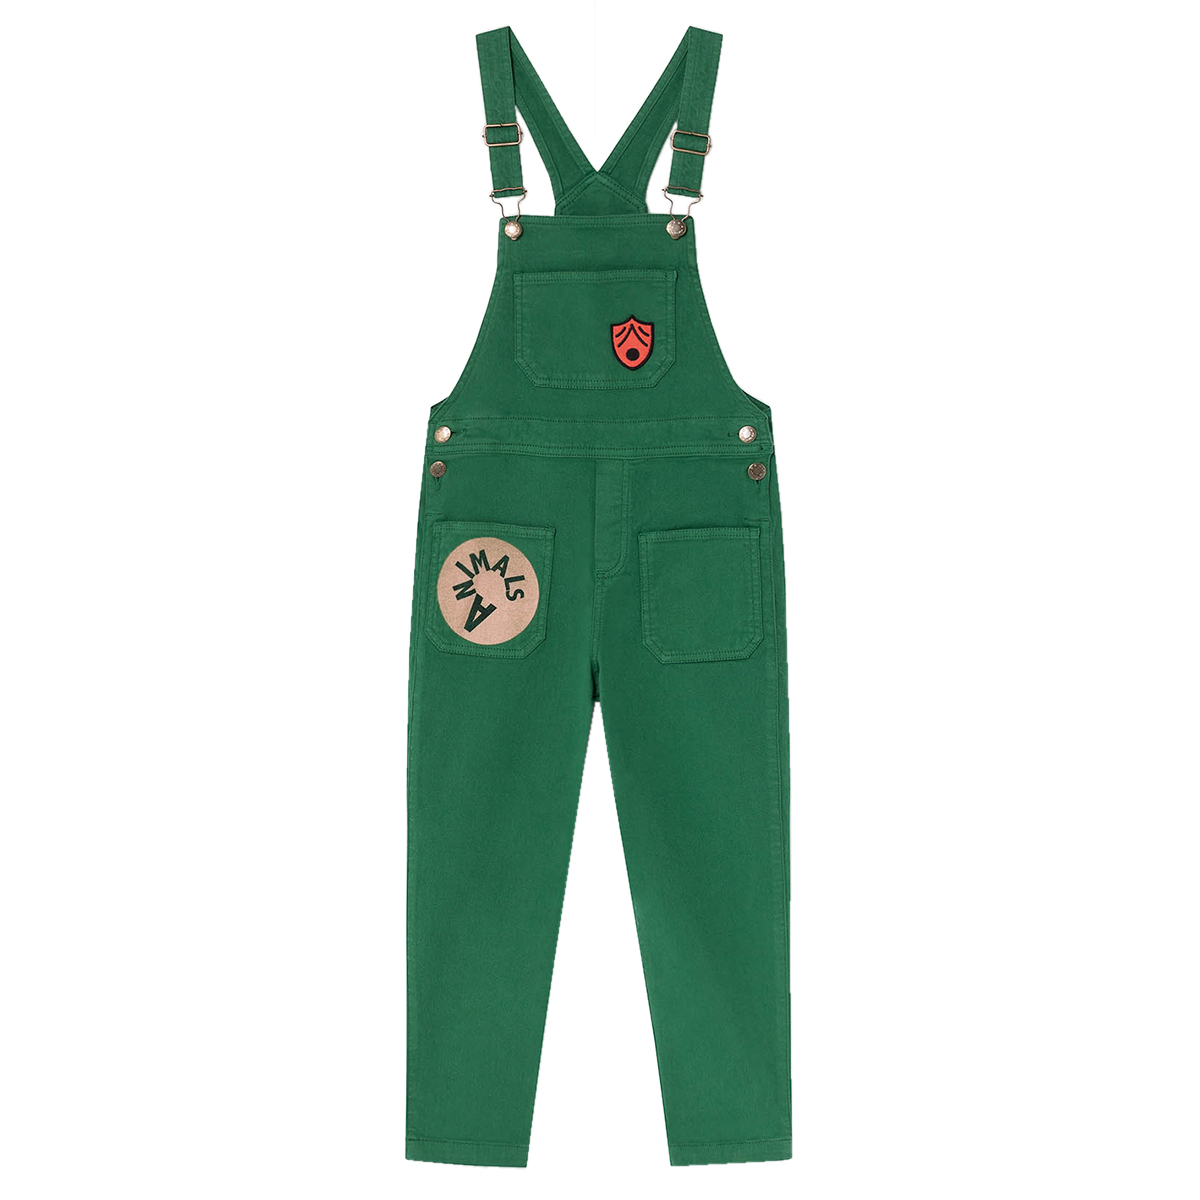 The Animals Observatory Green Mule Overall